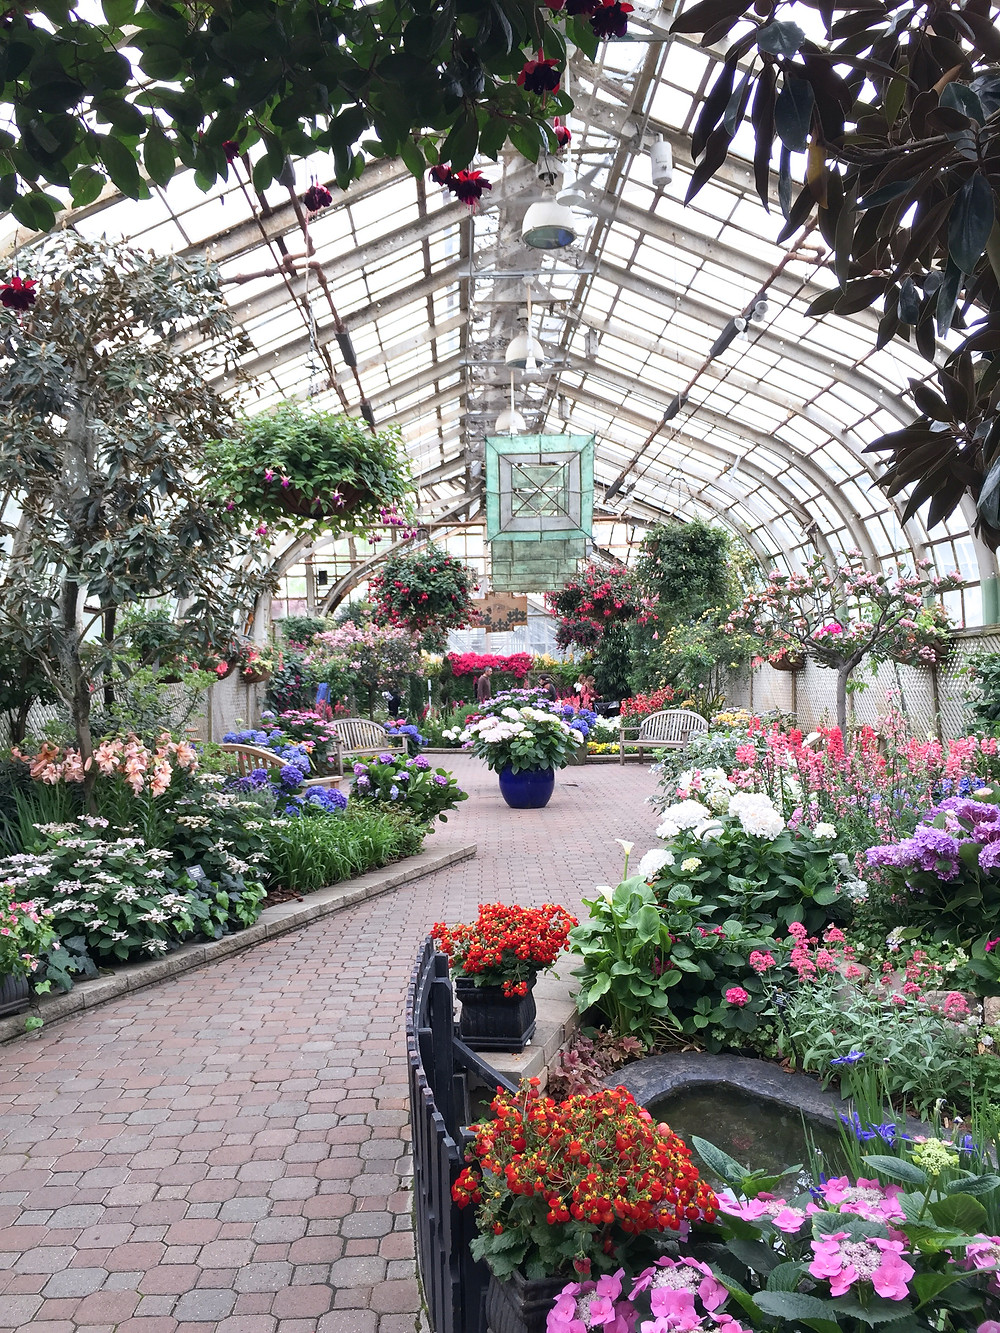 Flowers and plants at Lincoln Park Conservatory in Chicago